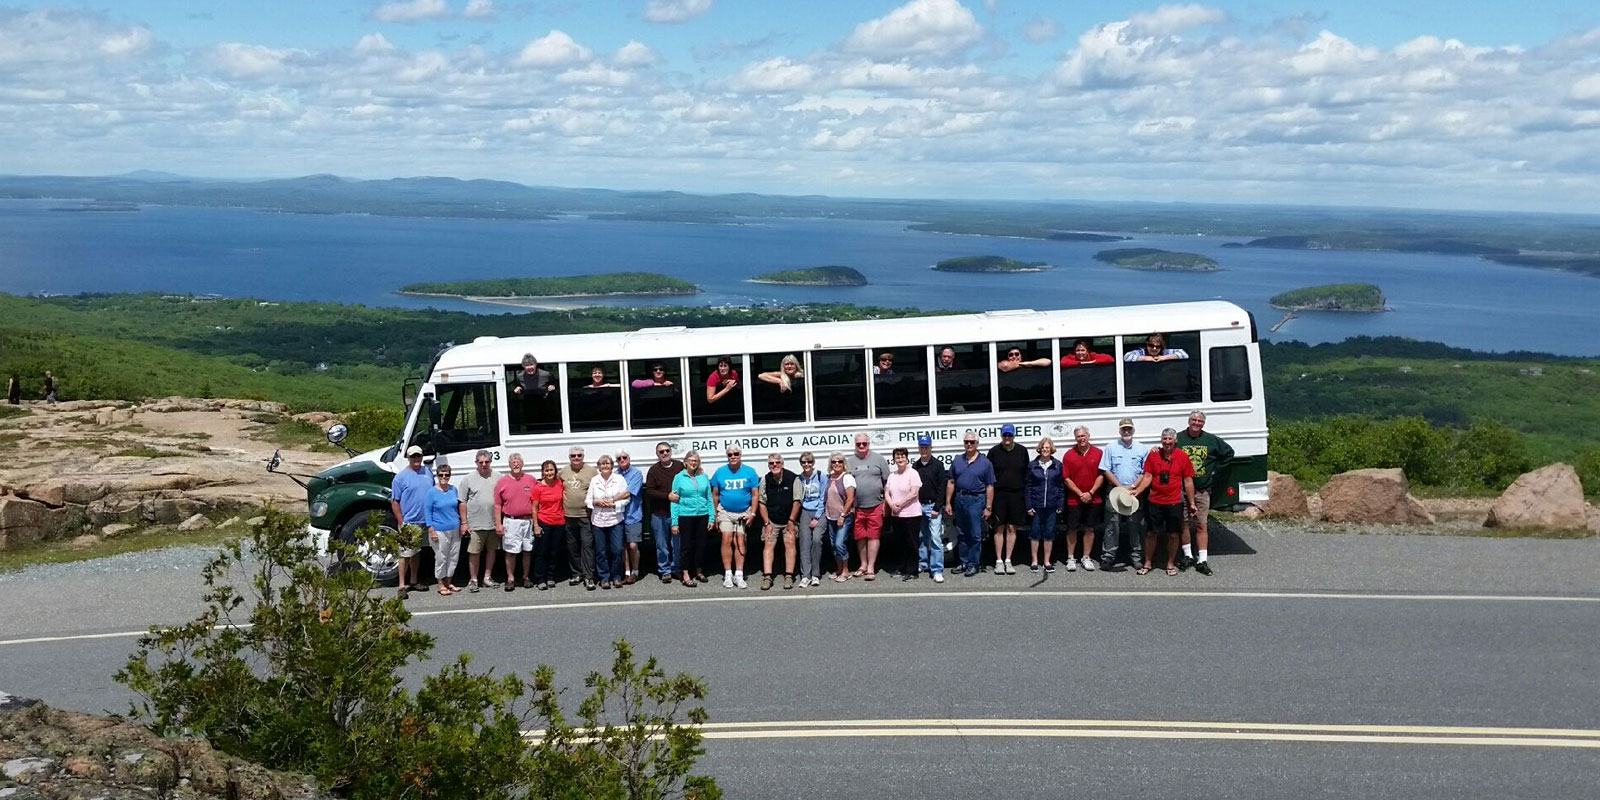 Tours At Acadia National Park